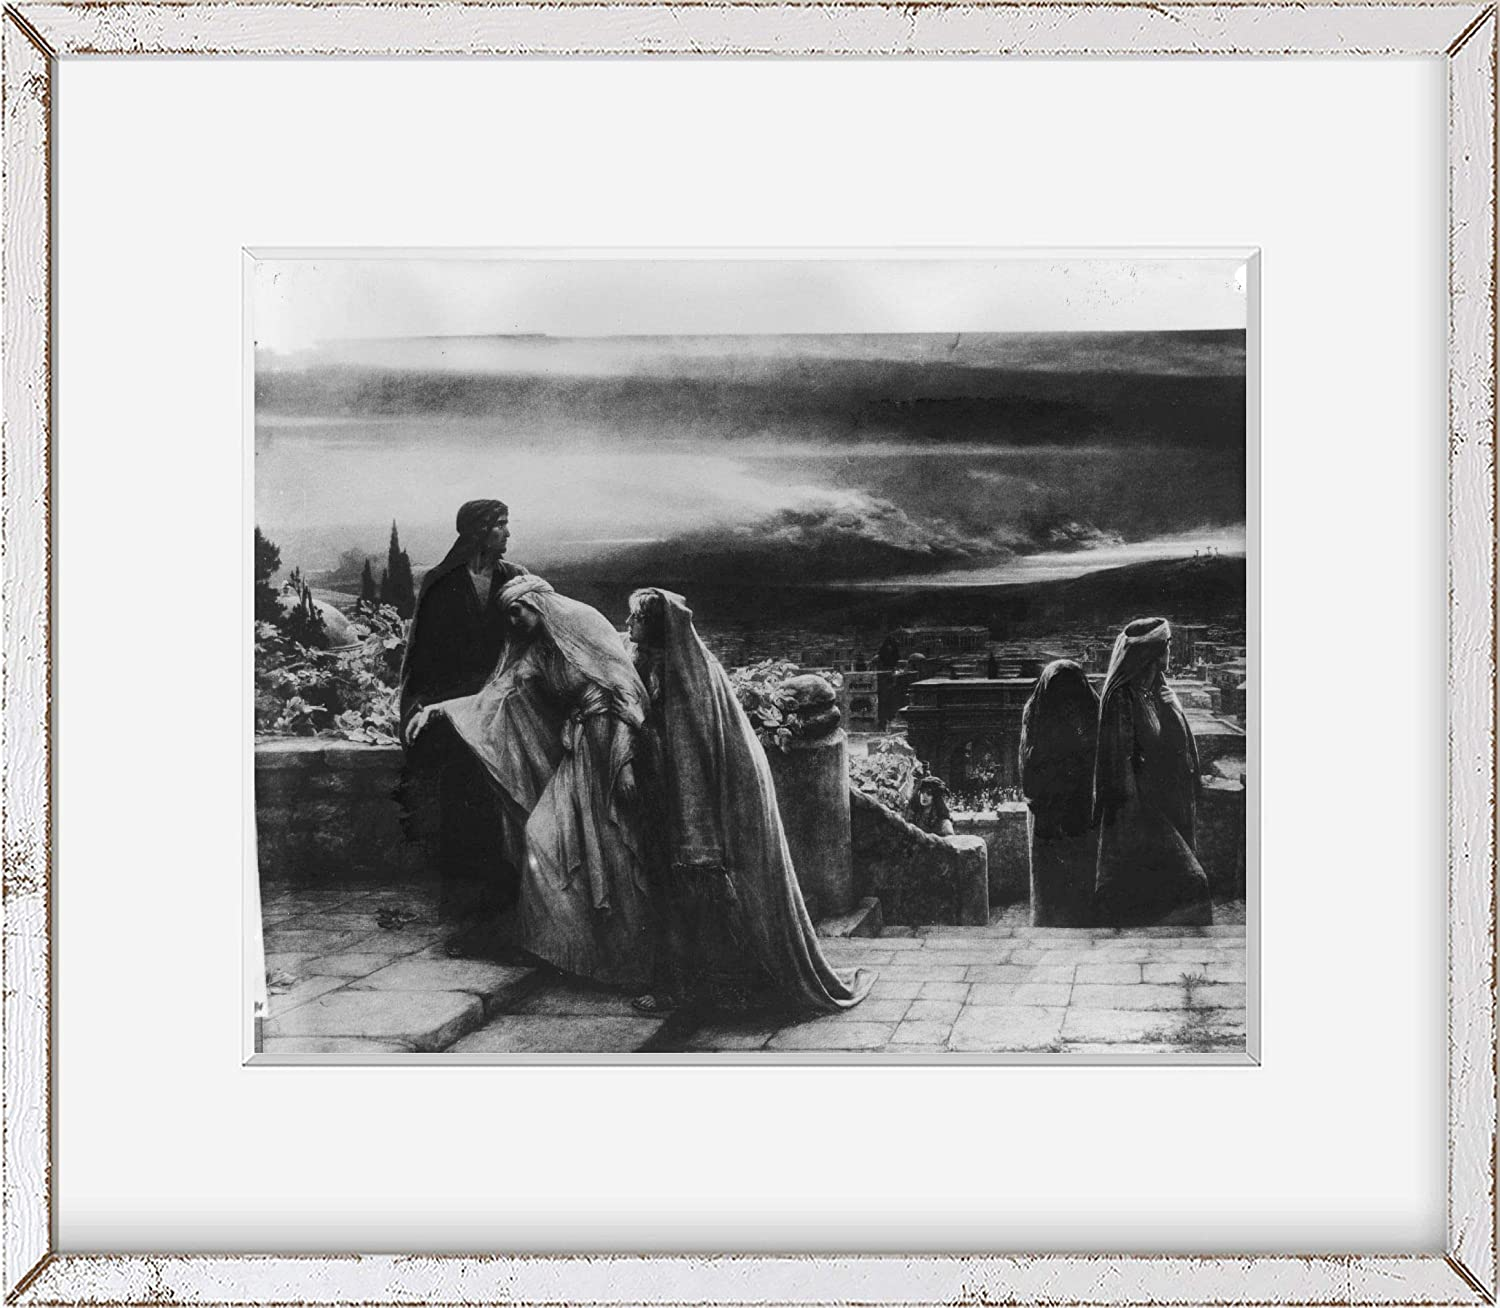 INFINITE Selling and selling PHOTOGRAPHS 1898 Photo The Famous Free shipping on posting reviews Paintings. Religious